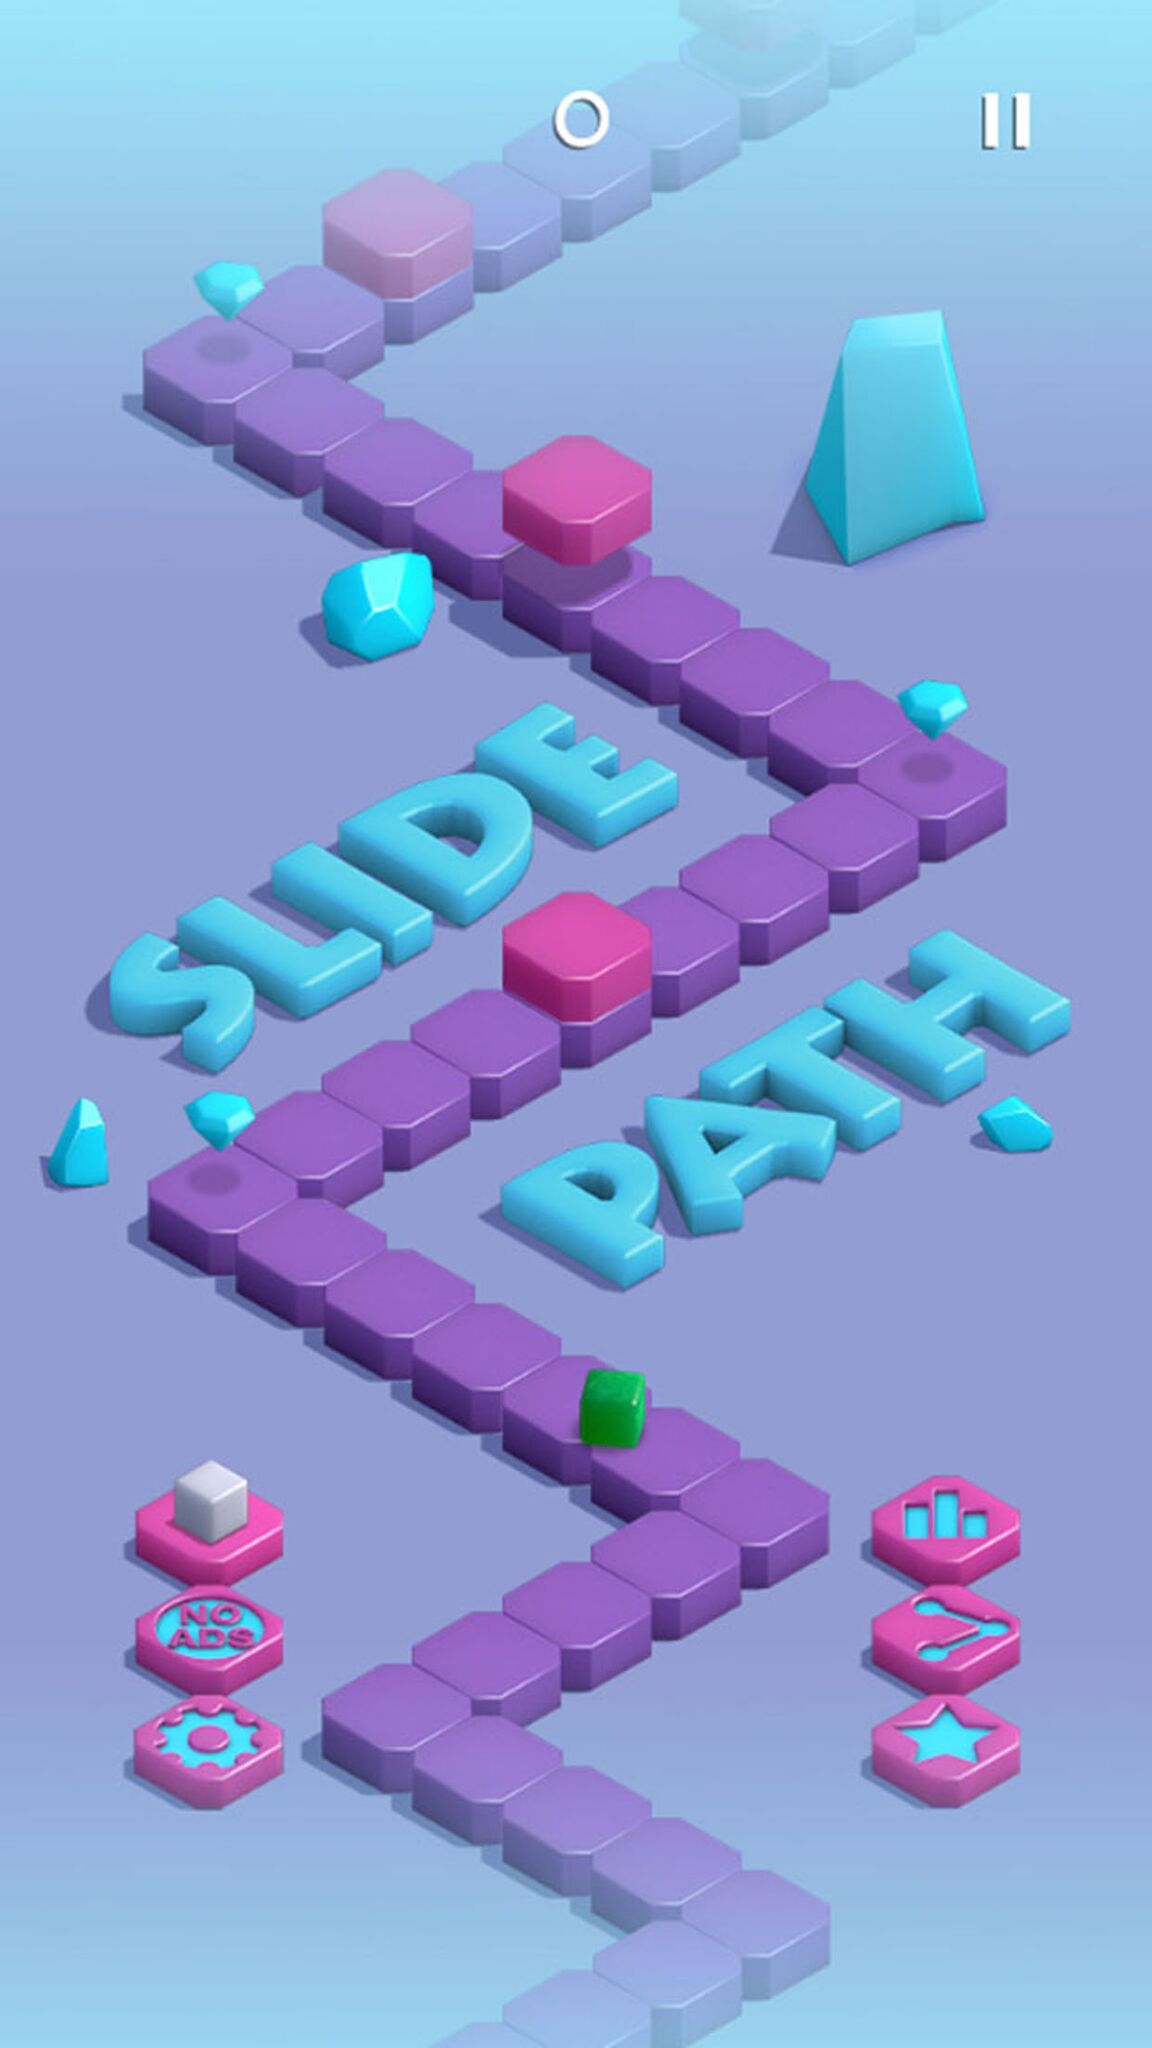 Slide Paths is now available on the appstore  #mobilegames #gamedev